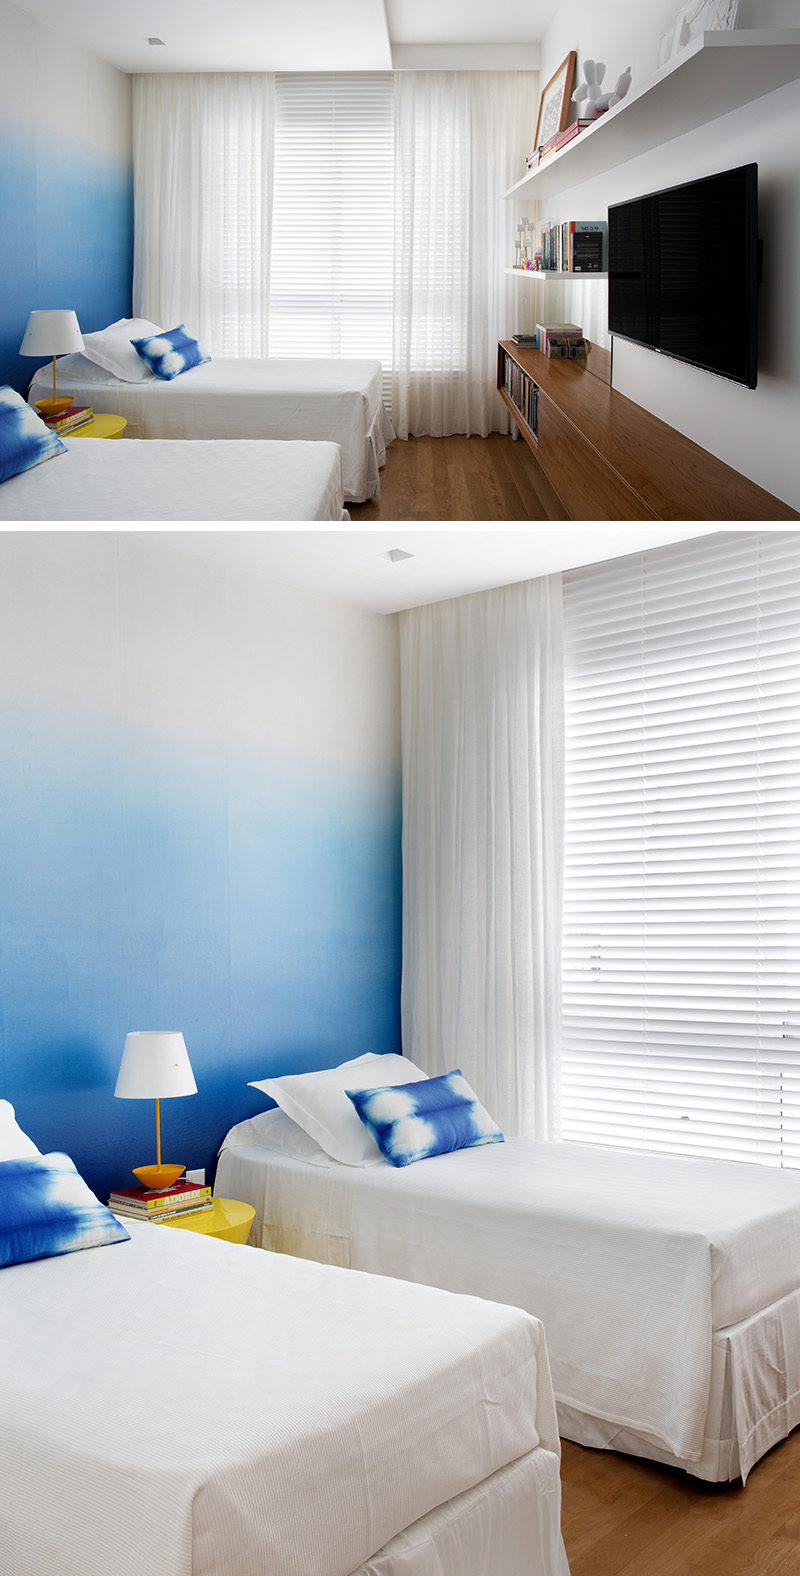 Wallpaper Accent Wall Bedroom Design Ideas - Create An Ombre Wall For A Colorful